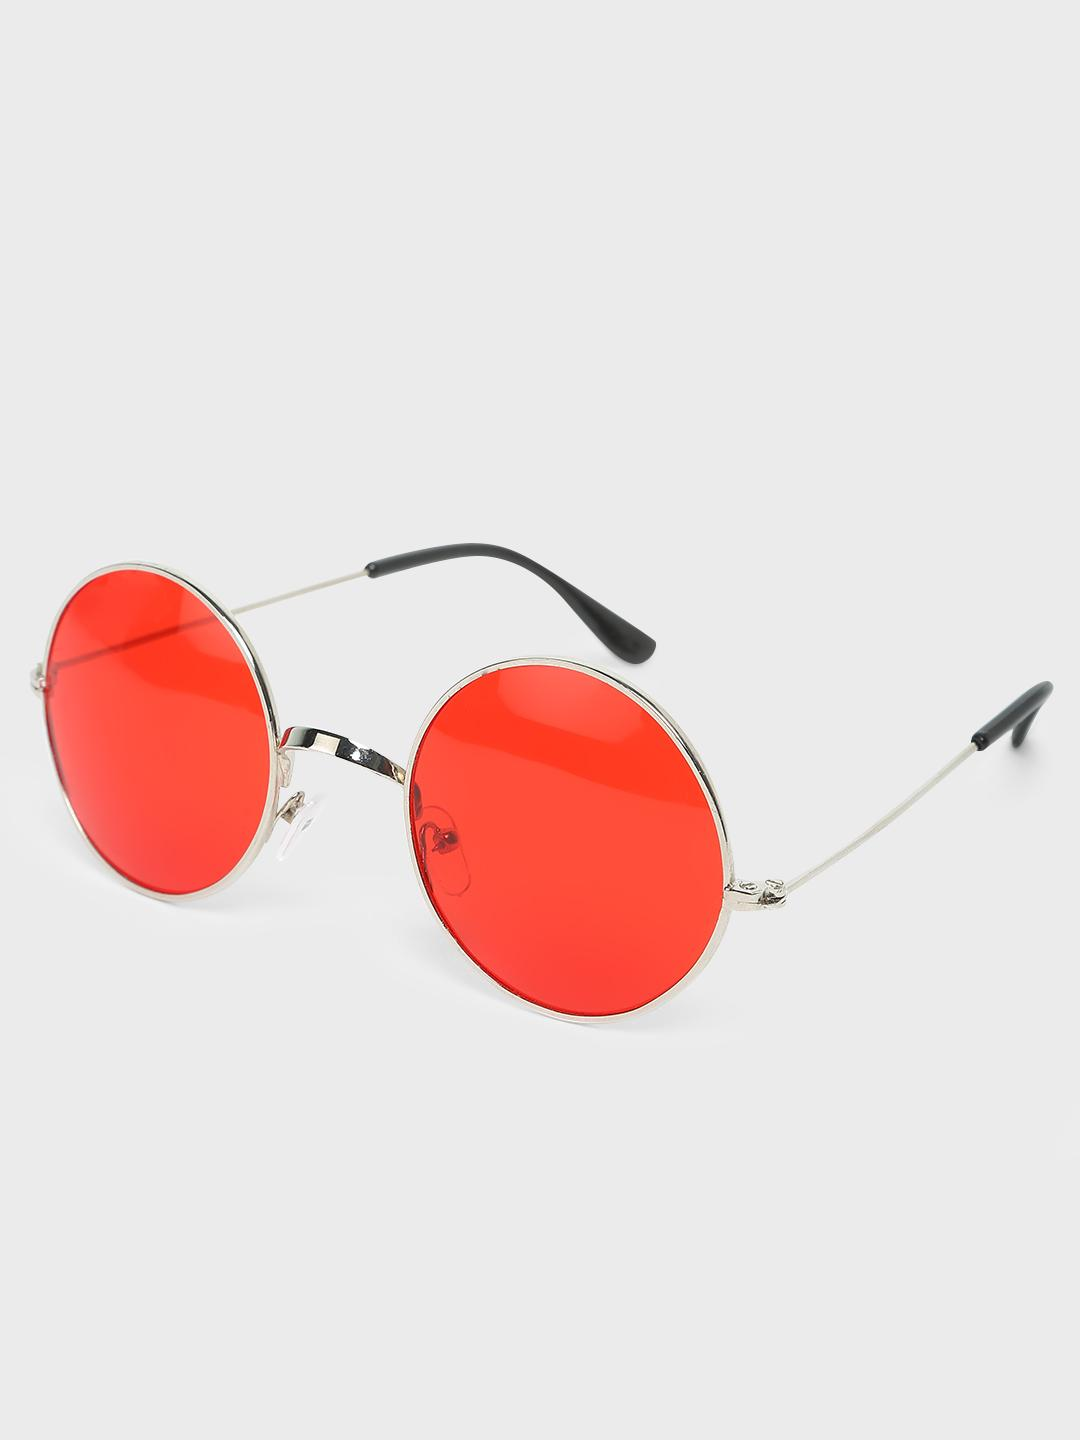 Fuzoku SILVER/RED Round Rim Tea-Shades Sunglasses 1